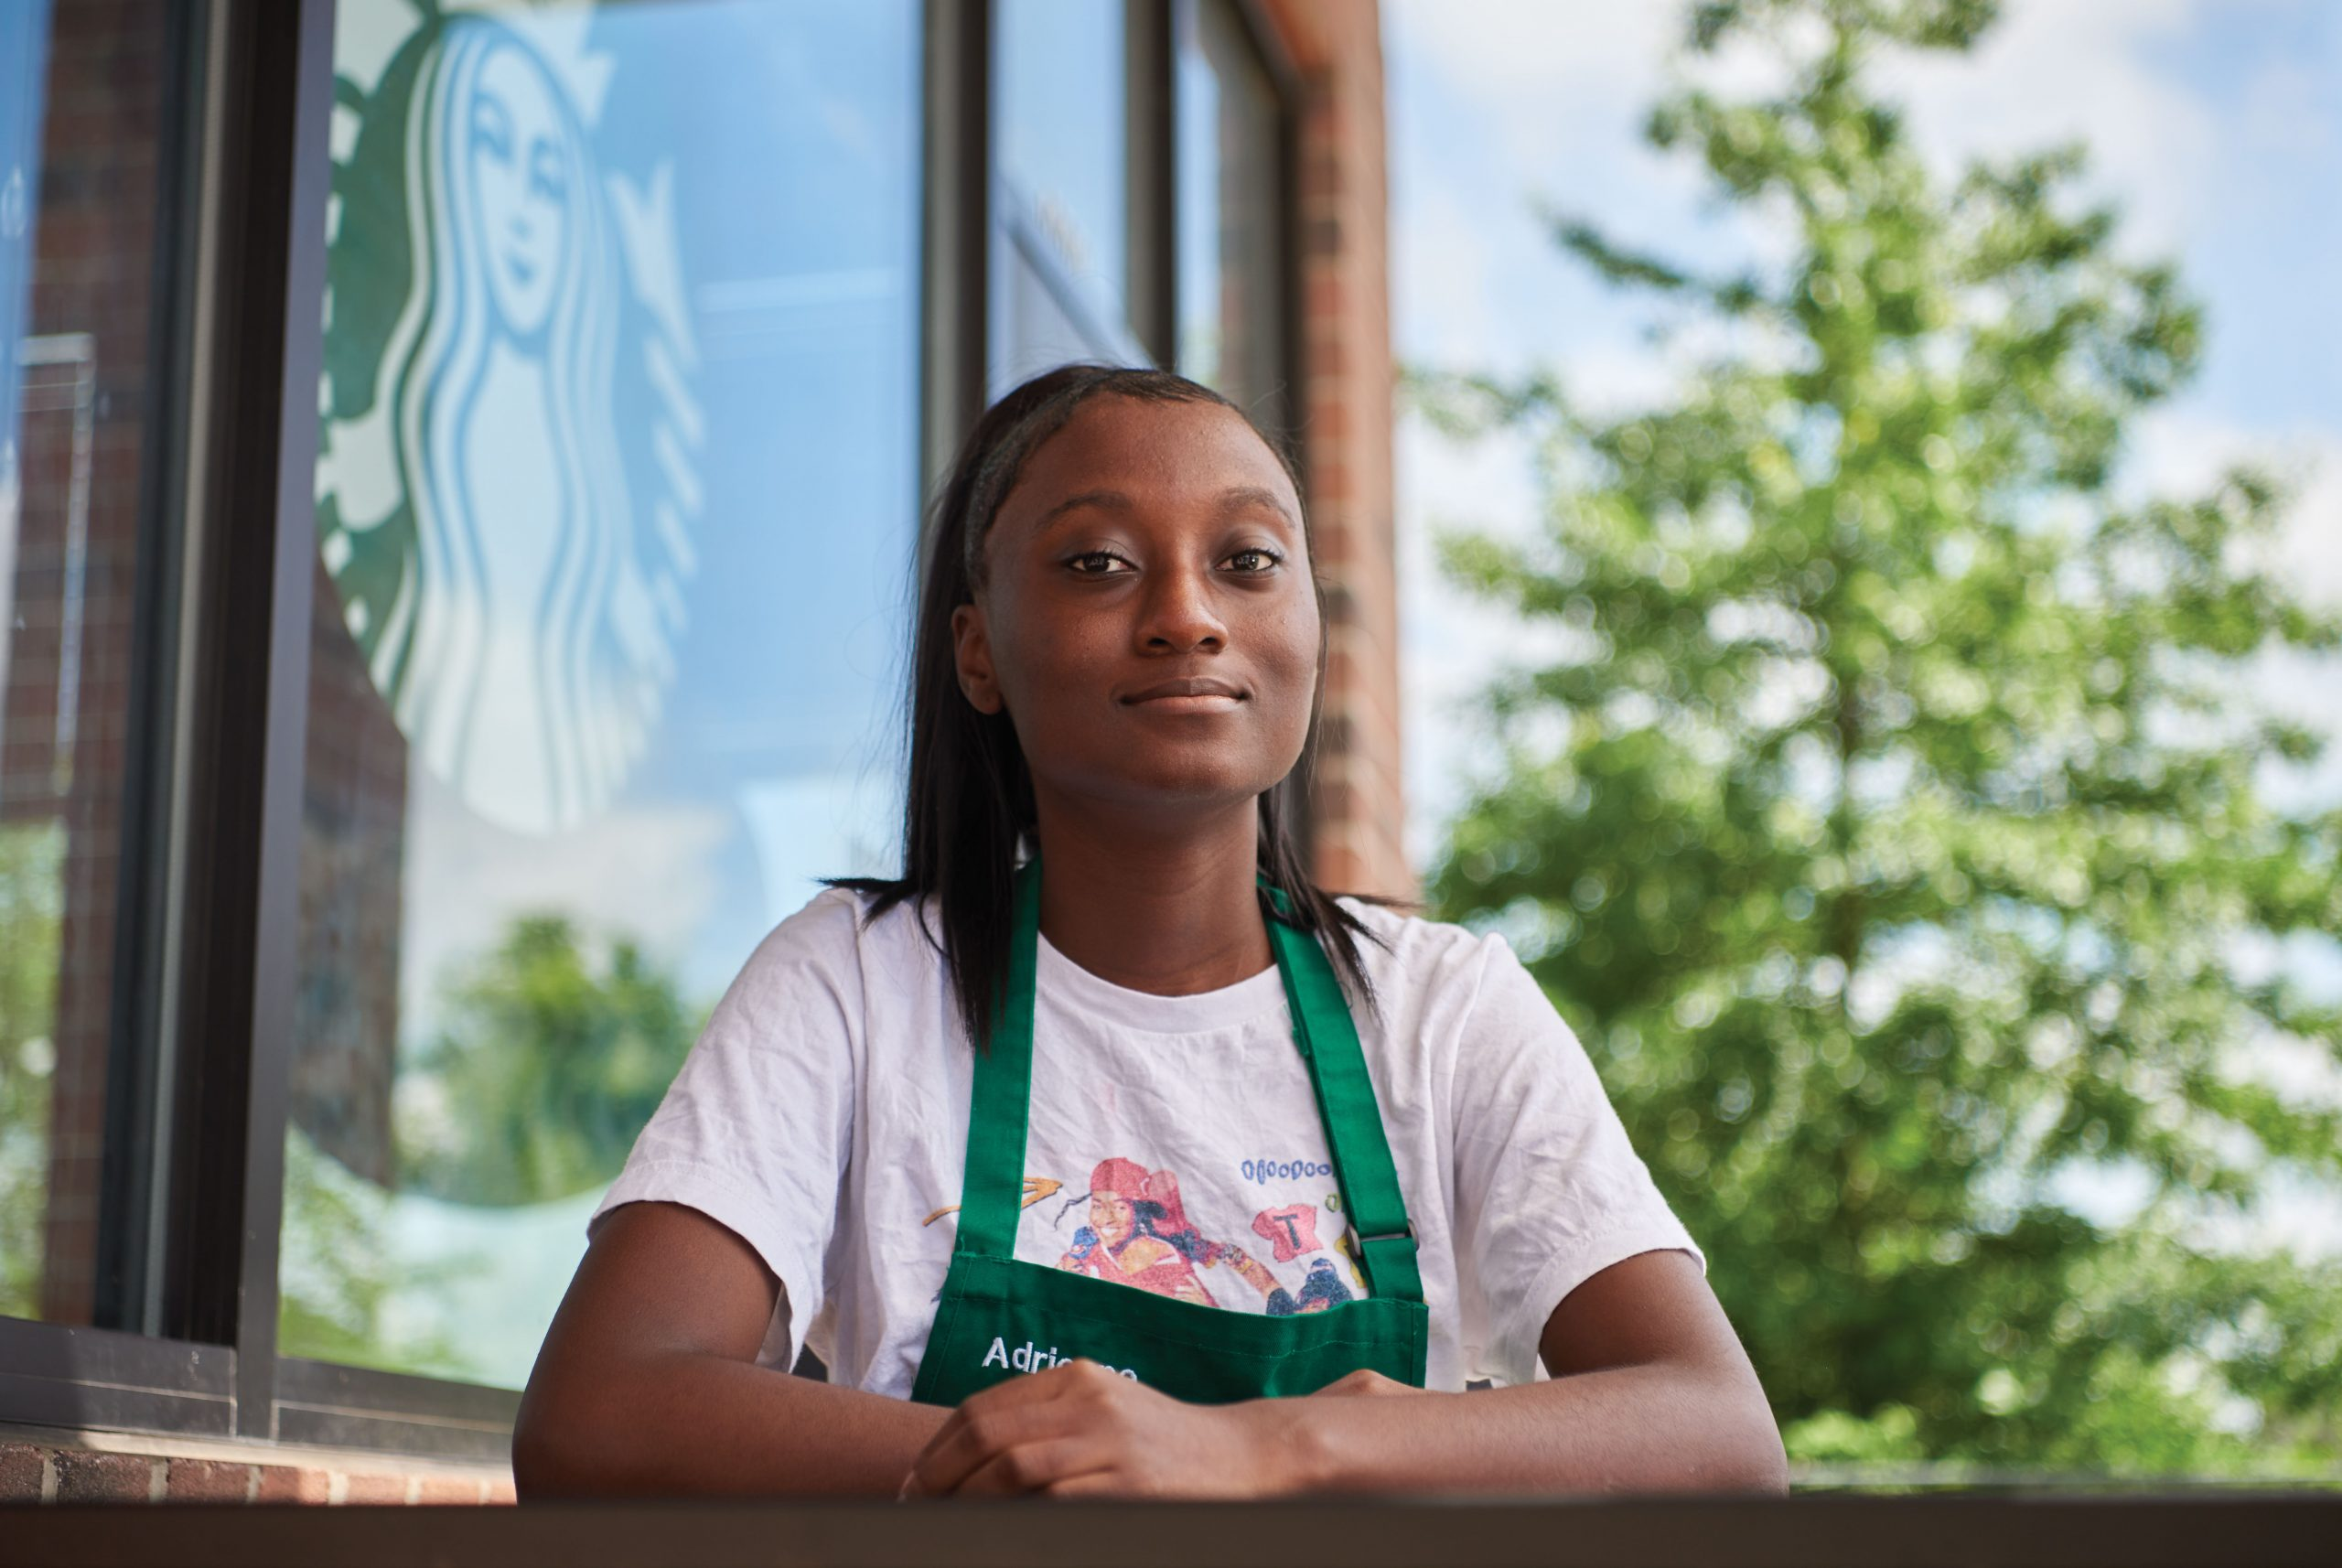 Adrienne Bruce sits at a table outside Starbucks